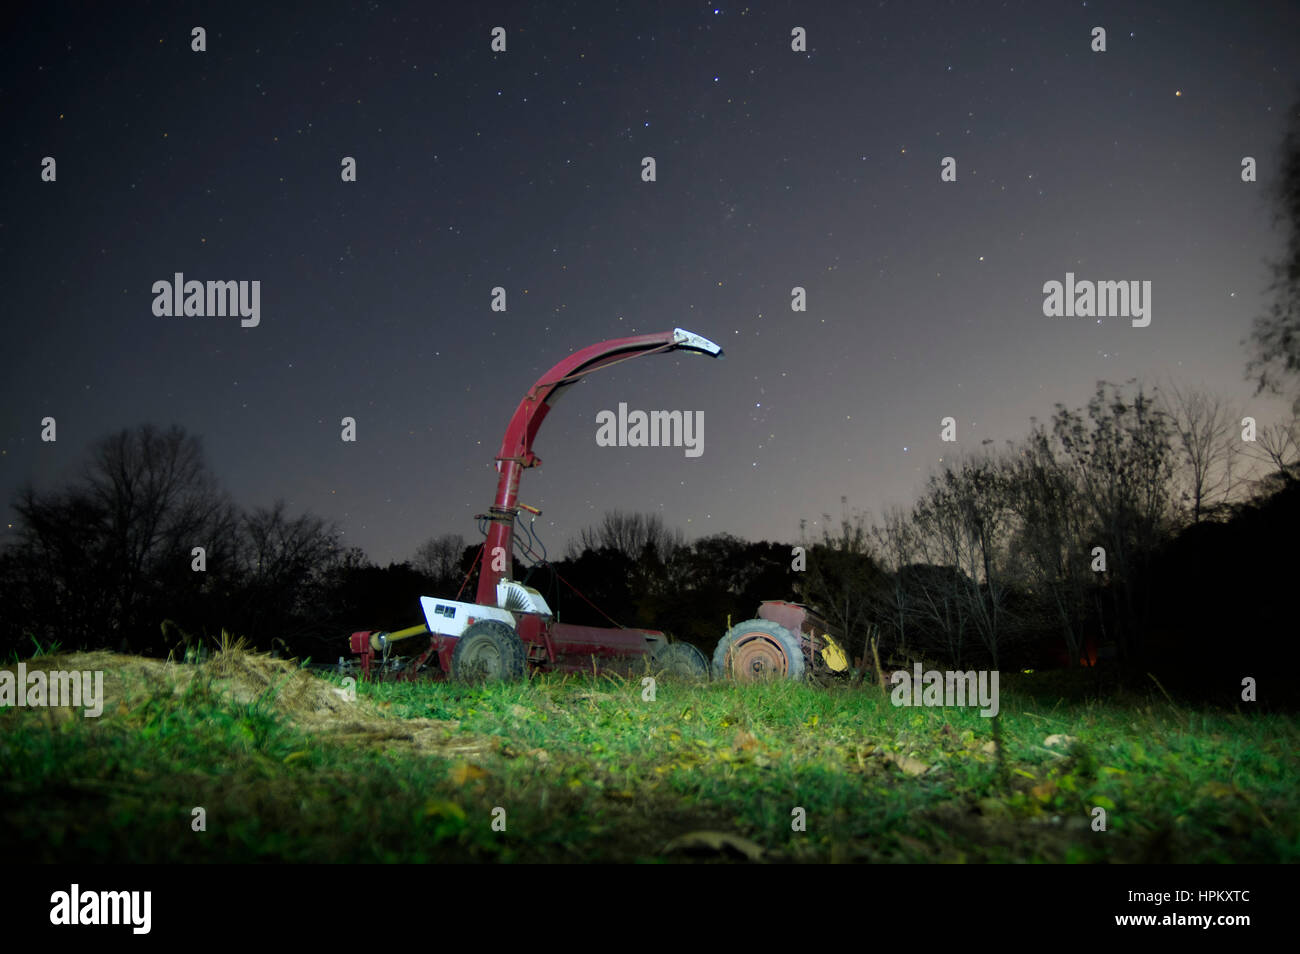 machinery agriculture silo under a clear starry night sky. - Stock Image